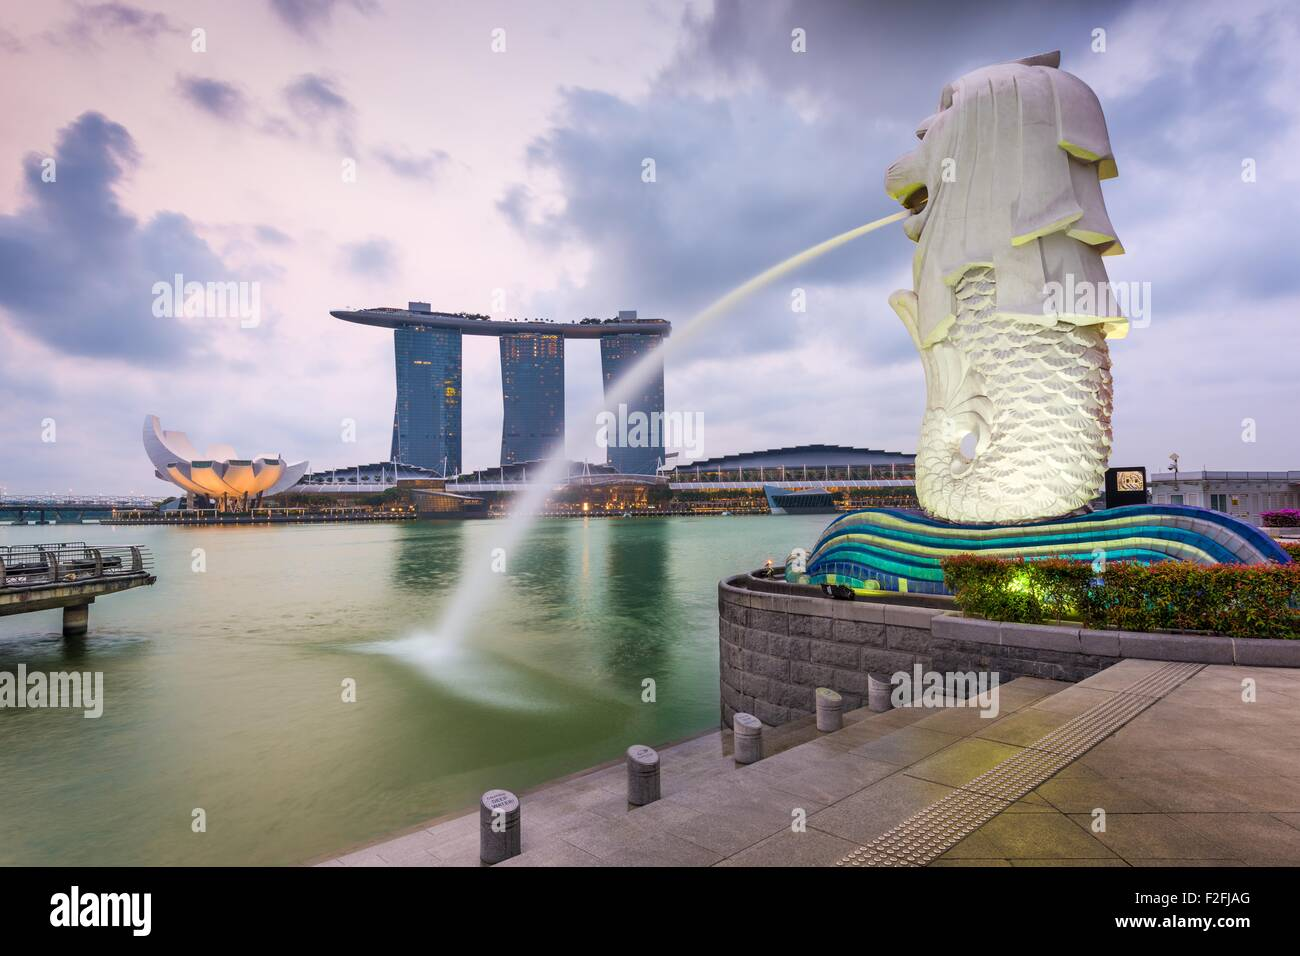 The Merlion fountain at Marina Bay. The merlion is a marketing icon used as a mascot and national personification - Stock Image